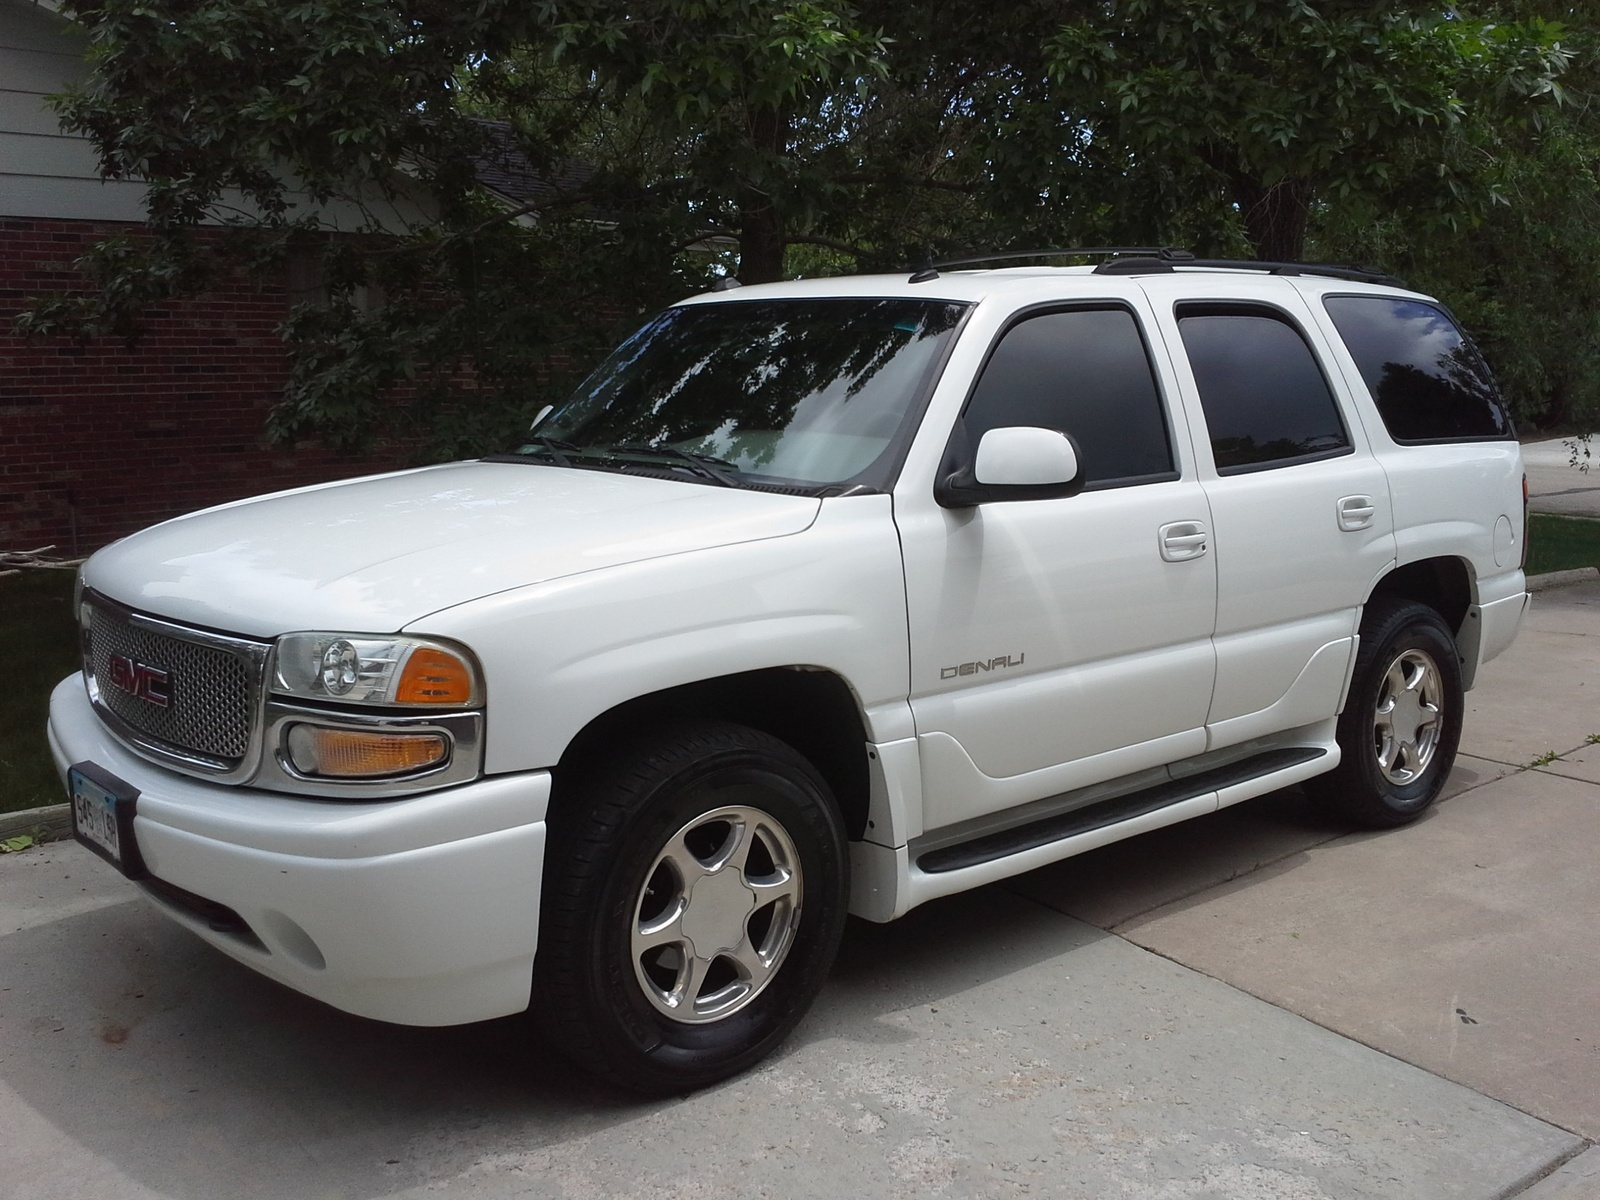 2004 GMC Yukon Pictures C1928 besides 420650 Torque Specs together with leer in addition 5y6k3 Gmc 04 Gmc Code Po332 Knock Sensor Low Bank moreover 1992 Lincoln Mark Vii 7. on 2009 gmc sierra 1500 value